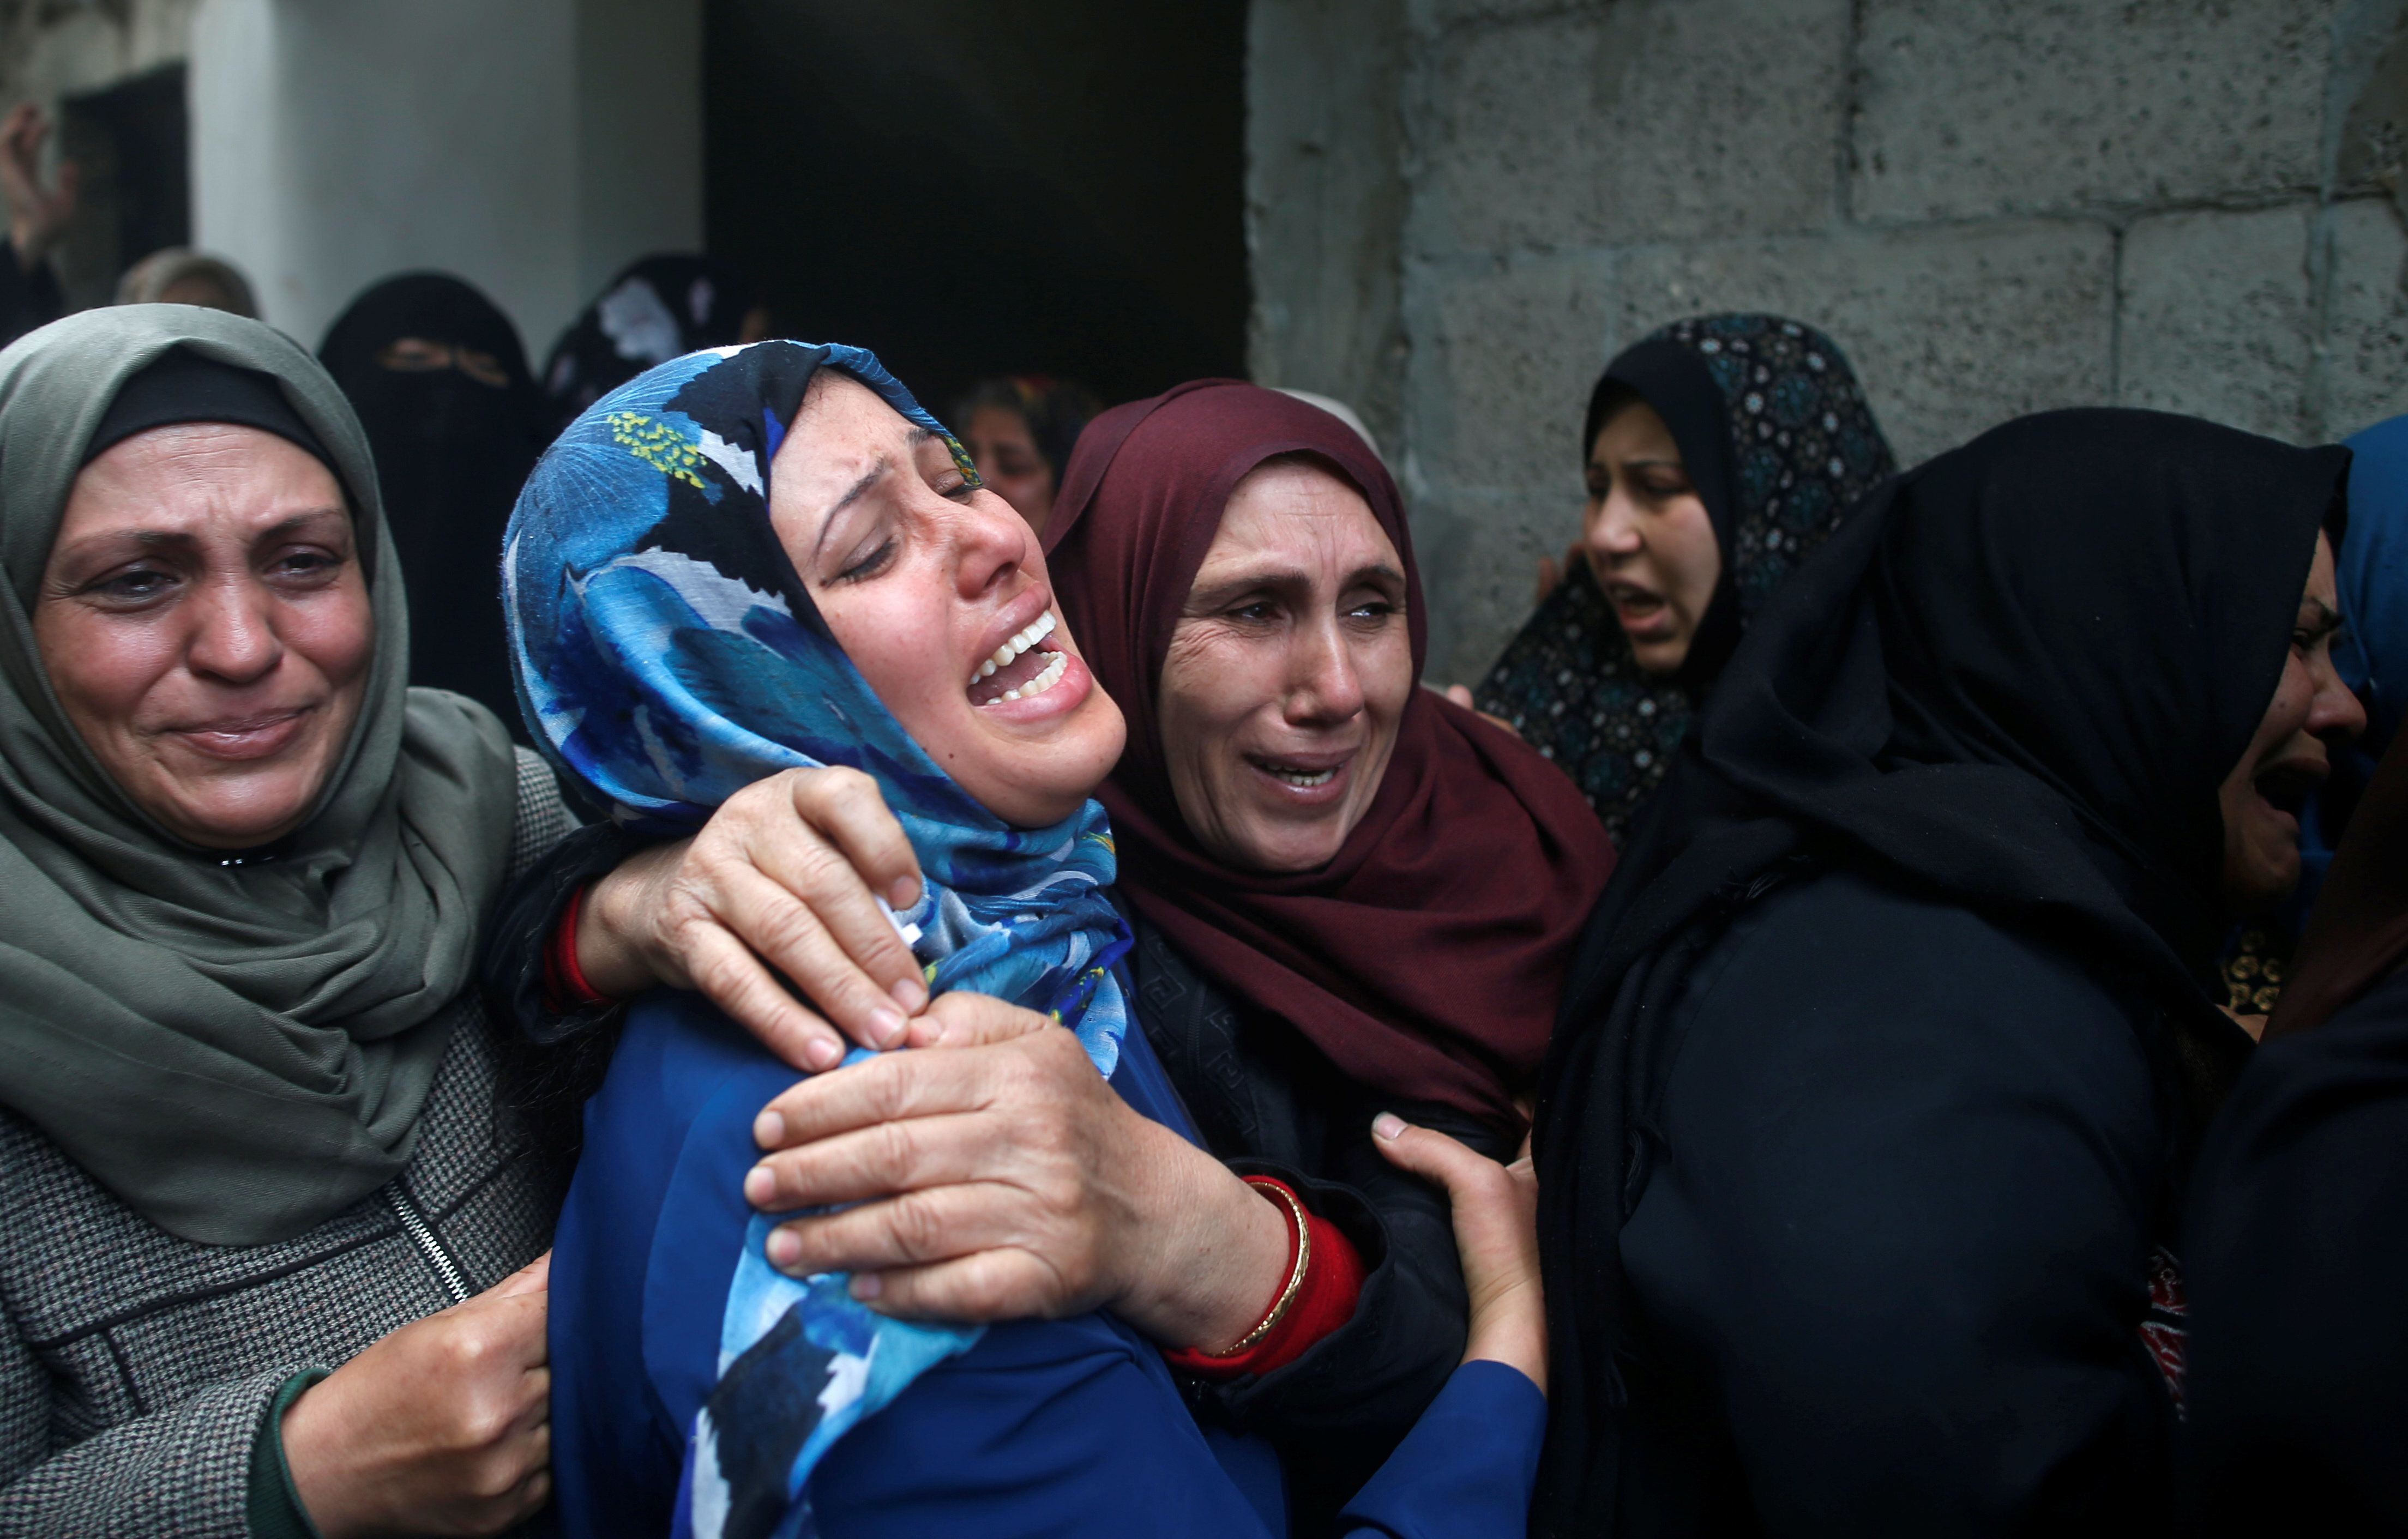 Relatives of Palestinian Hamdan Abu Amshah, who was killed along Israel border with Gaza, mourn during his funeral in Beit Hanoun town, in the northern Gaza Strip March 31, 2018. REUTERS/Suhaib Salem